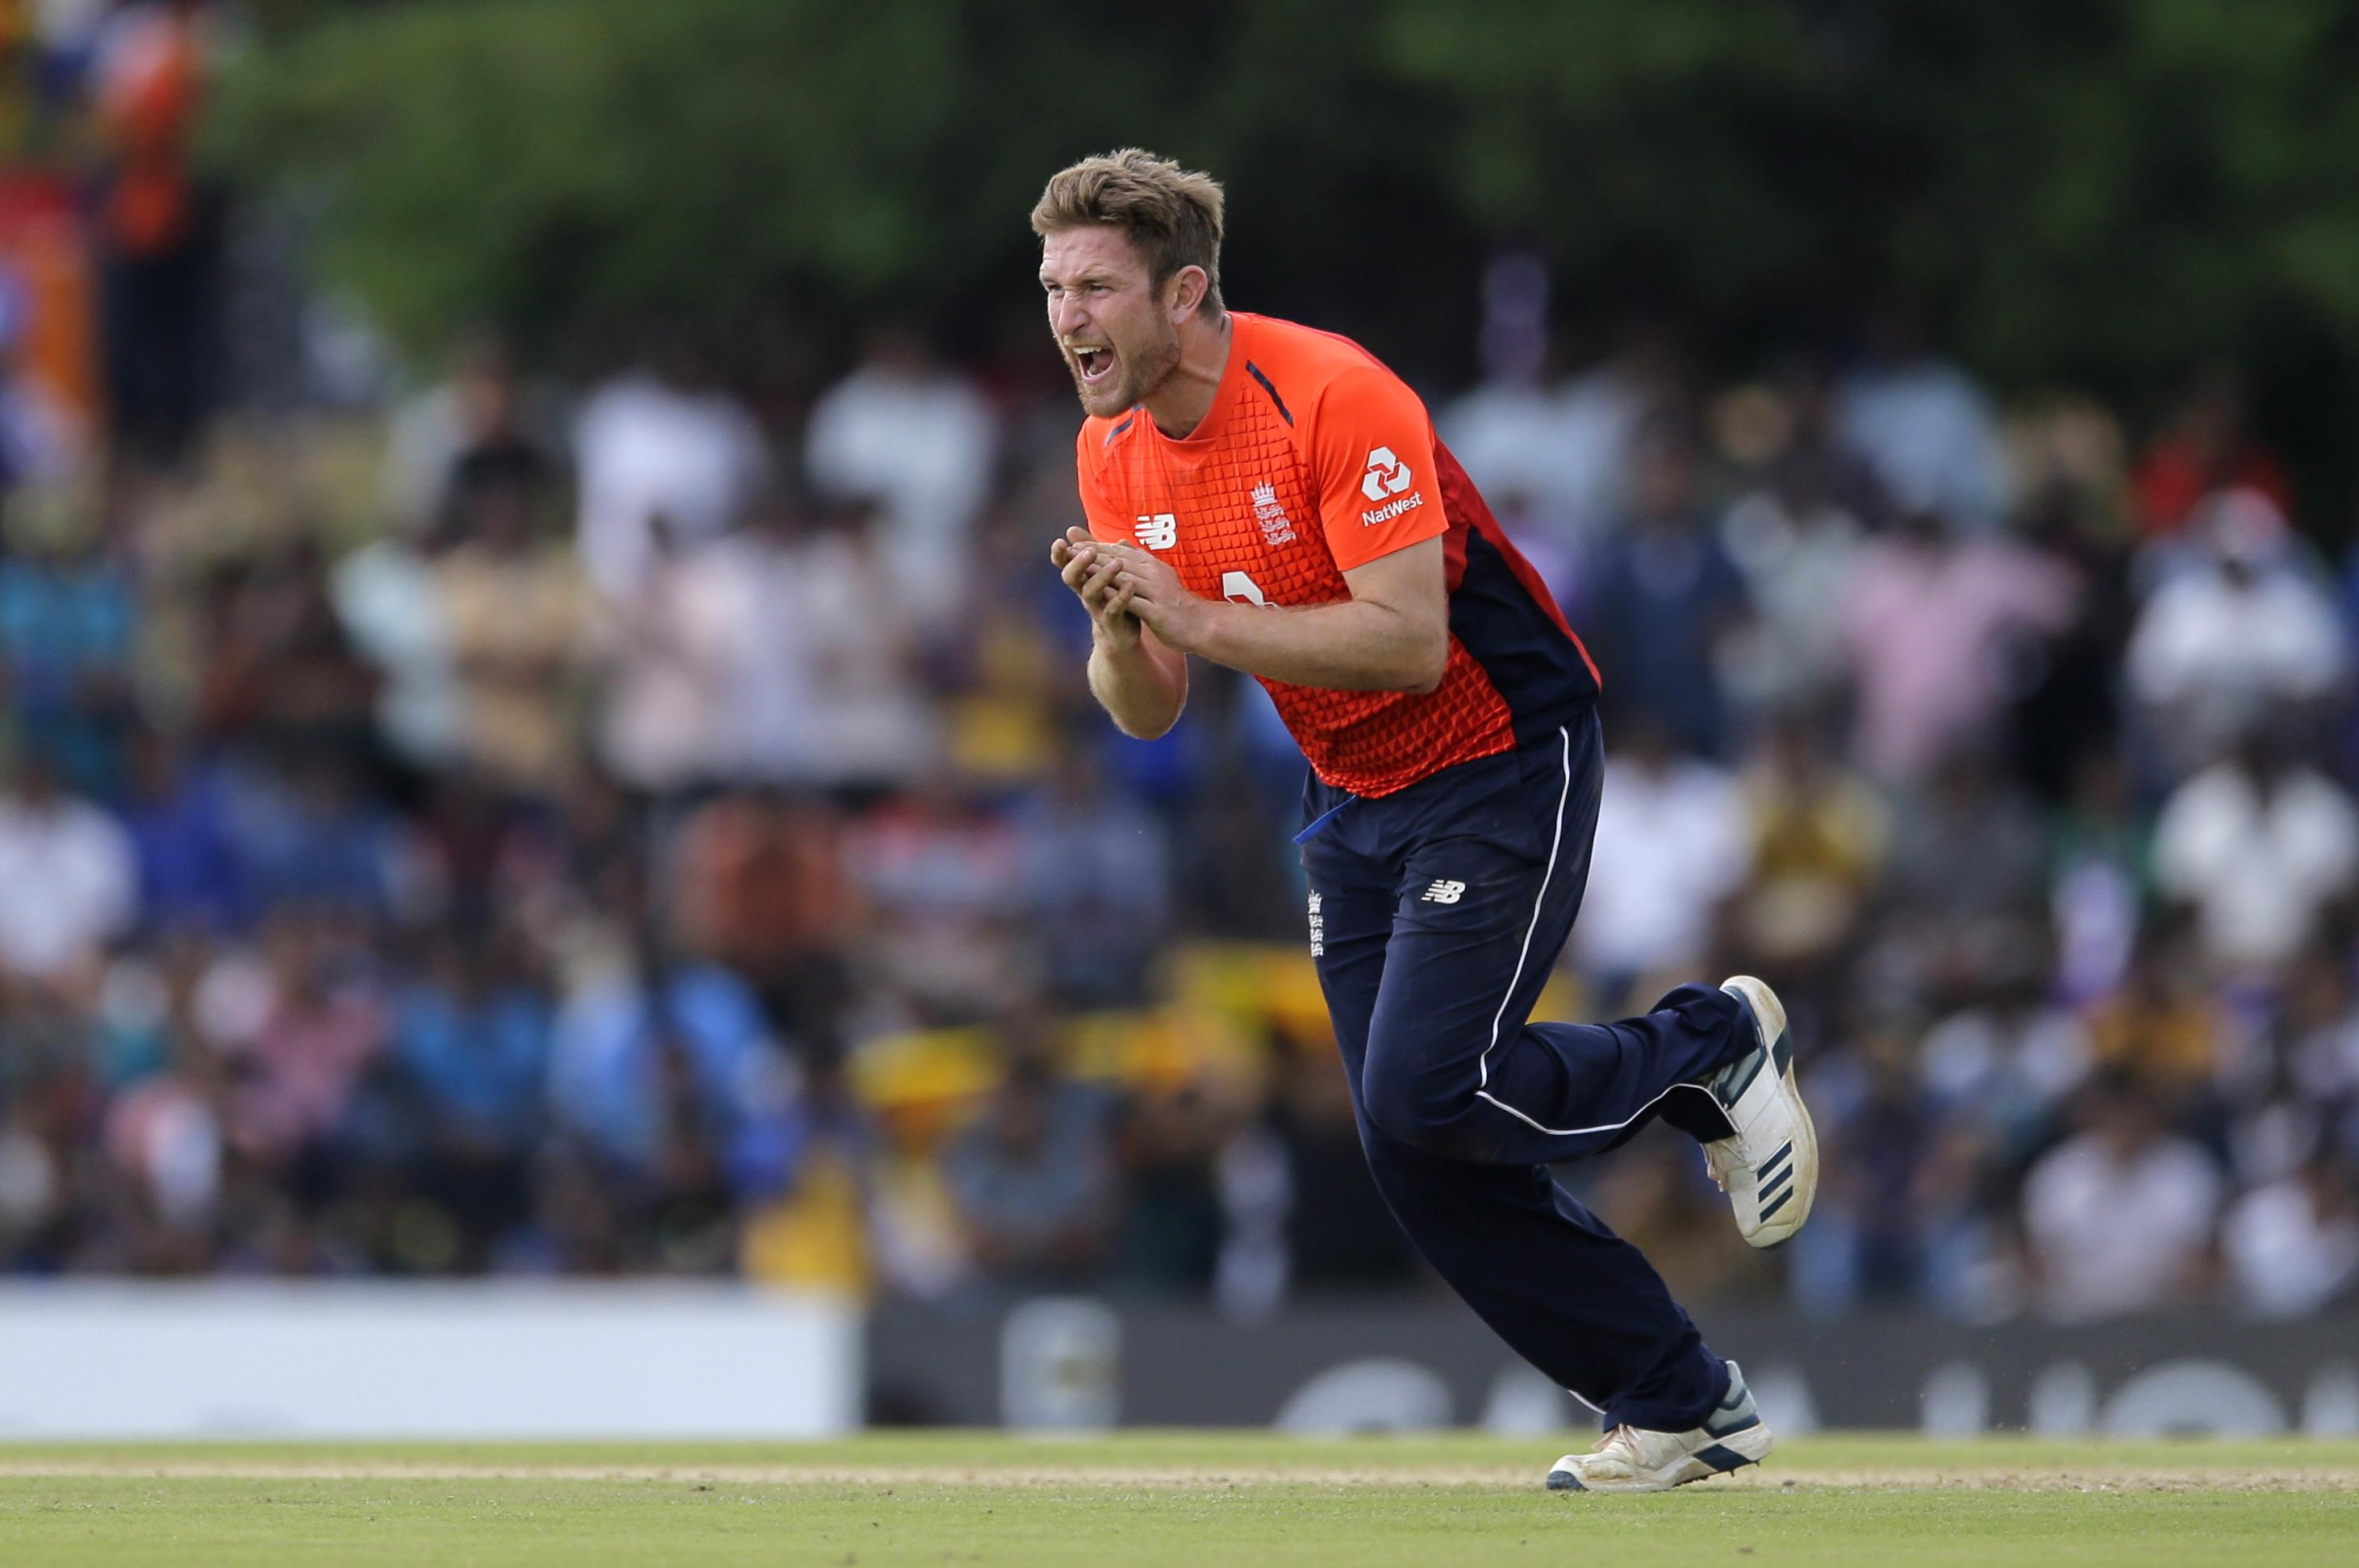 Warwickshire star Chris Woakes took three wickets in five overs against the Lions